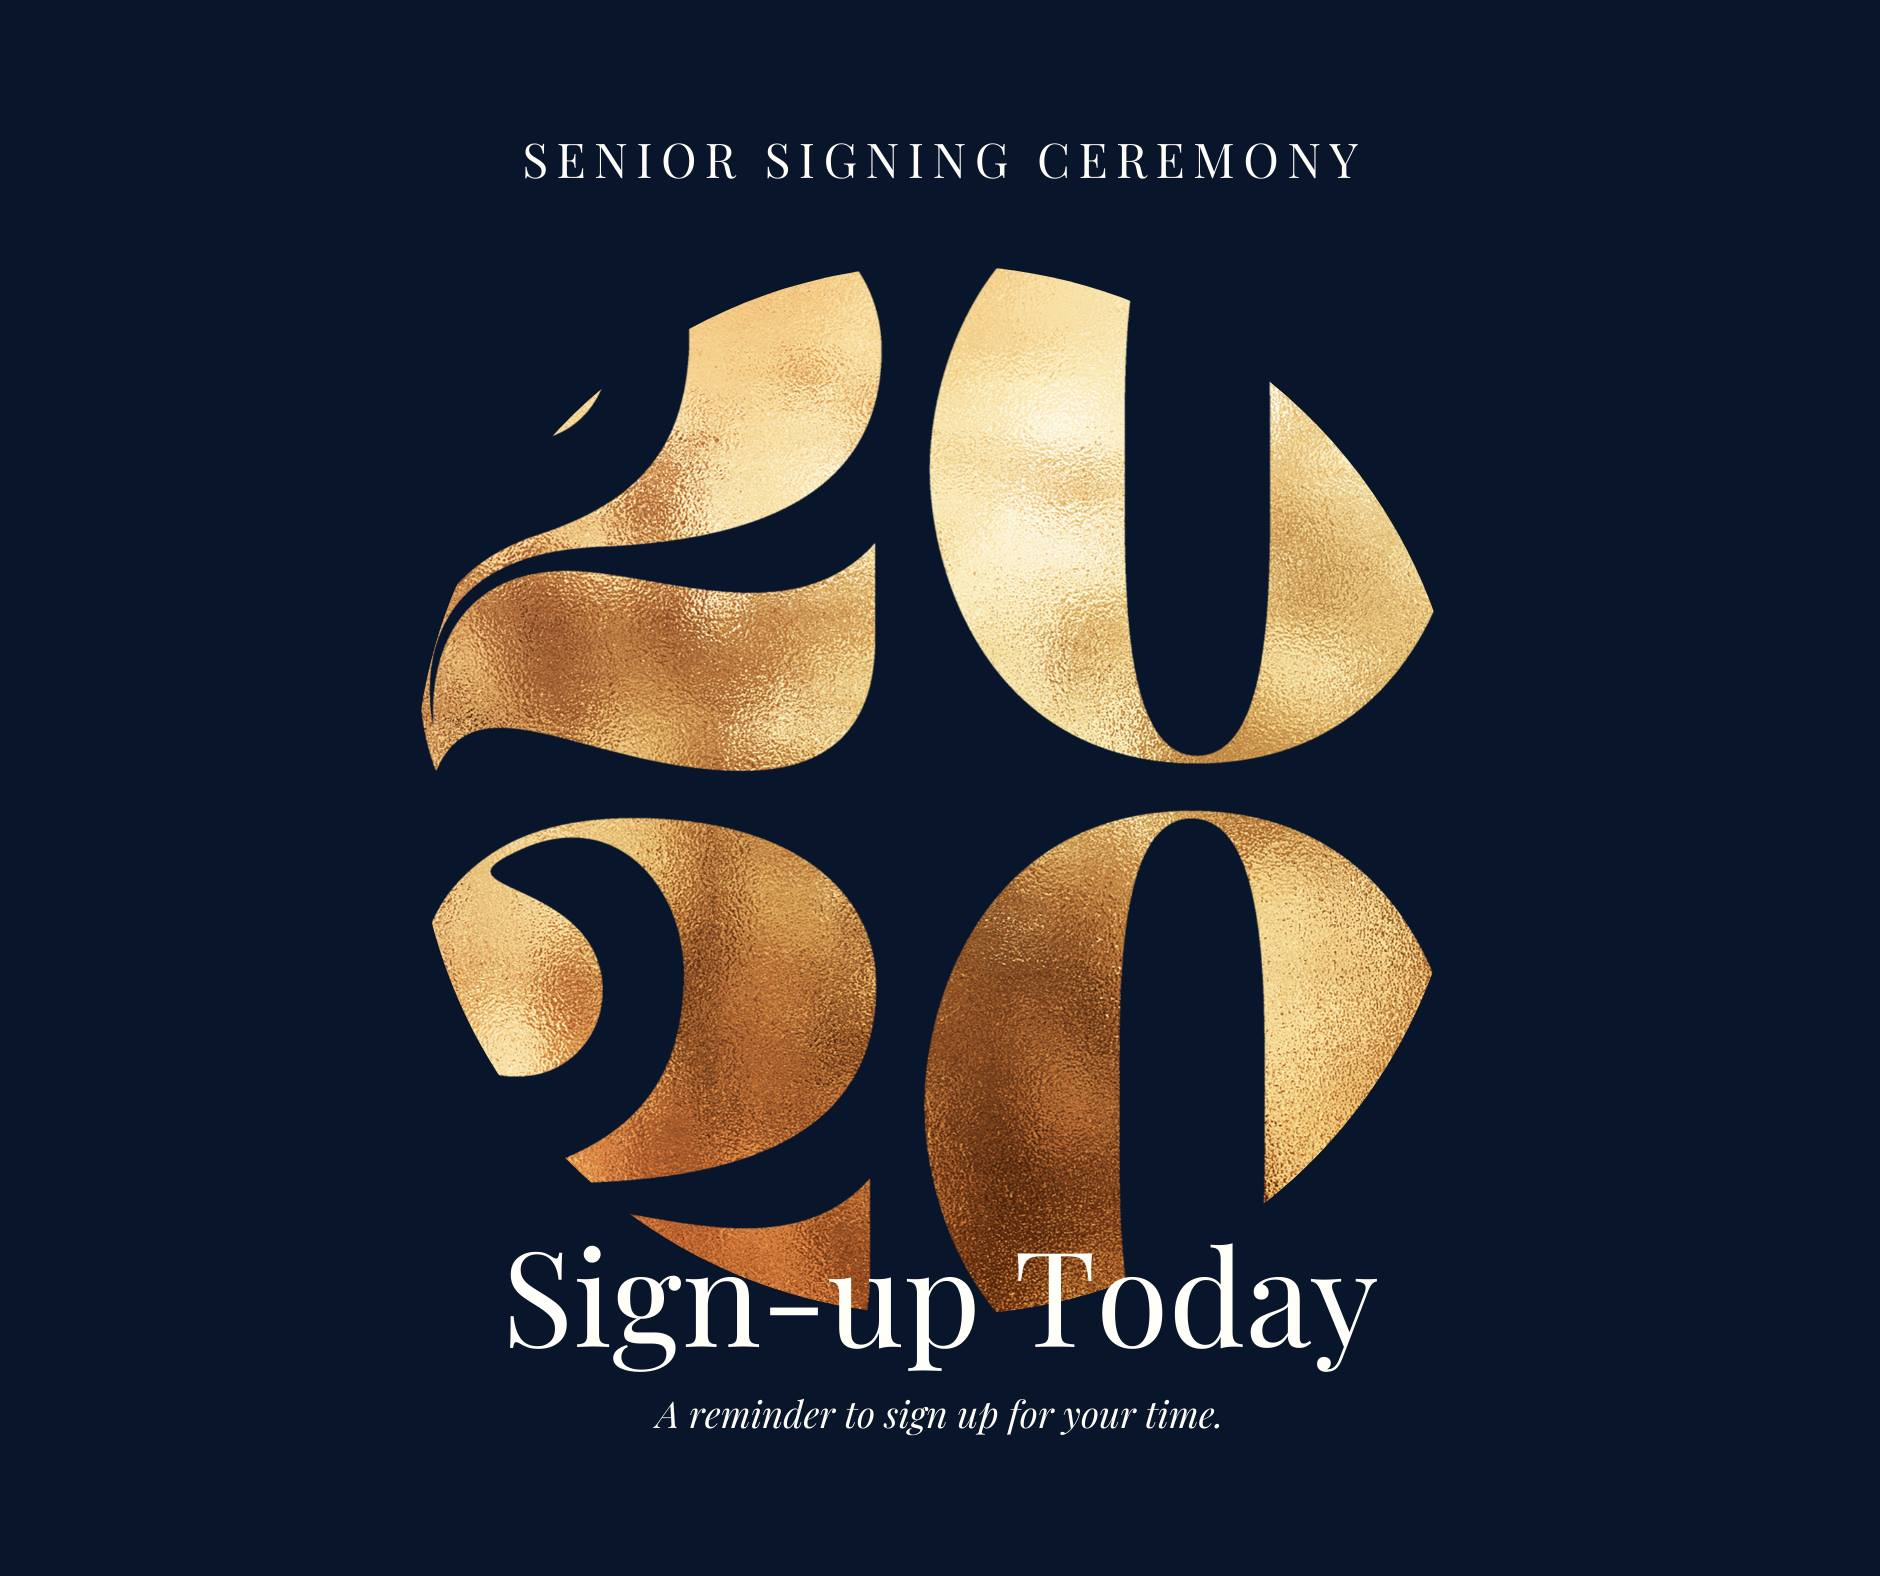 Senior signing ceremony sign up